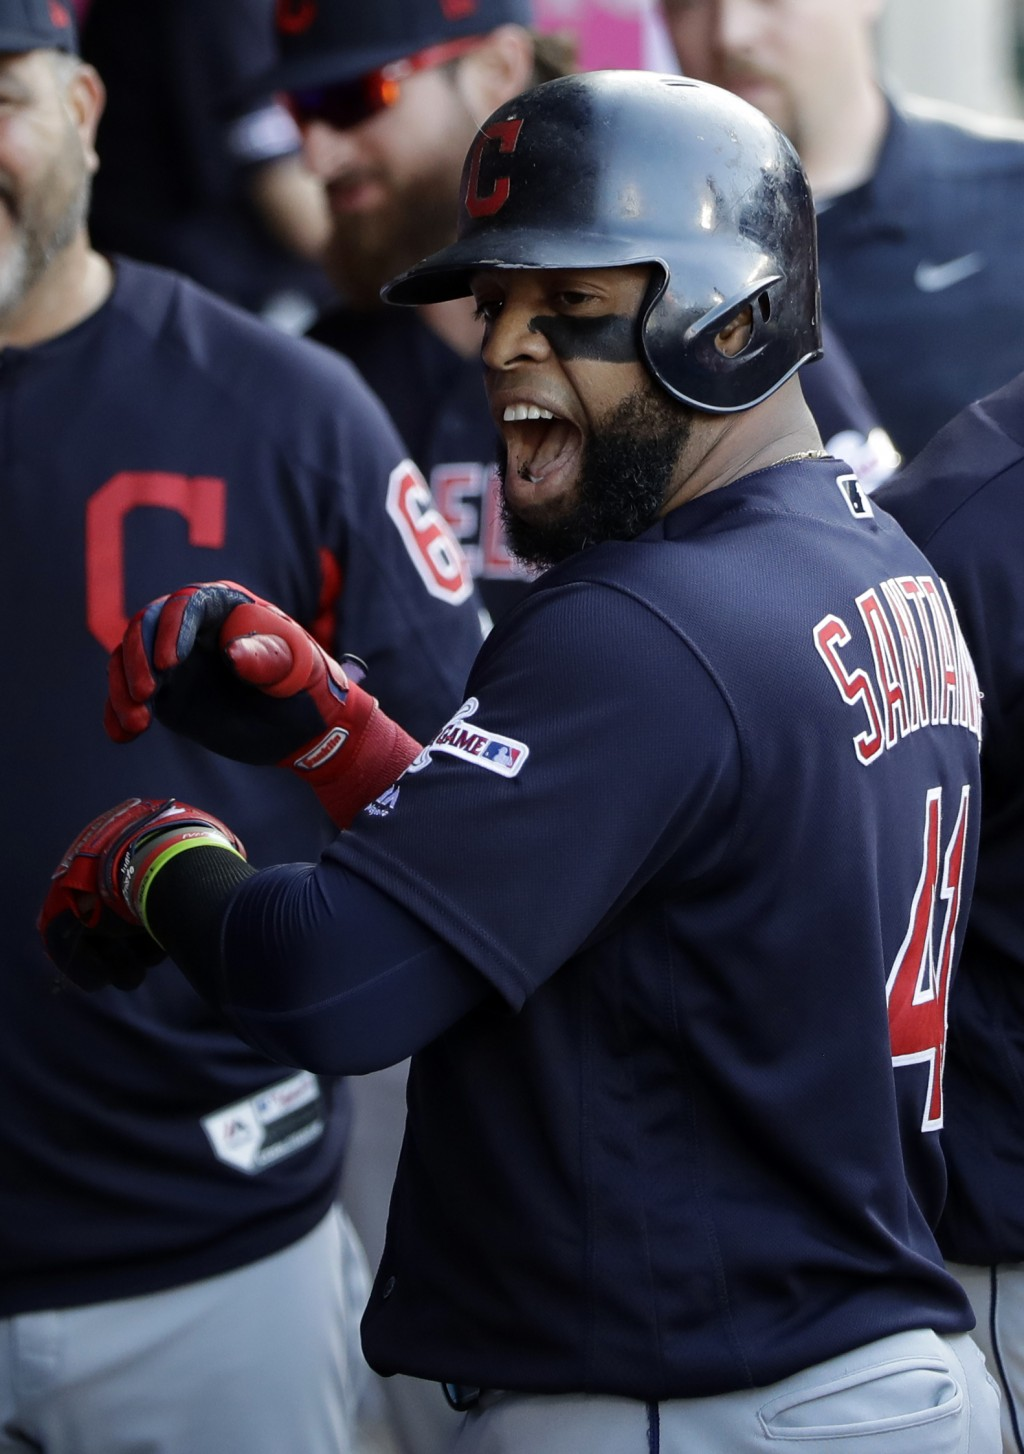 Cleveland Indians' Carlos Santana celebrates in the dugout after his solo home run against the Los Angeles Angels during the first inning of a basebal